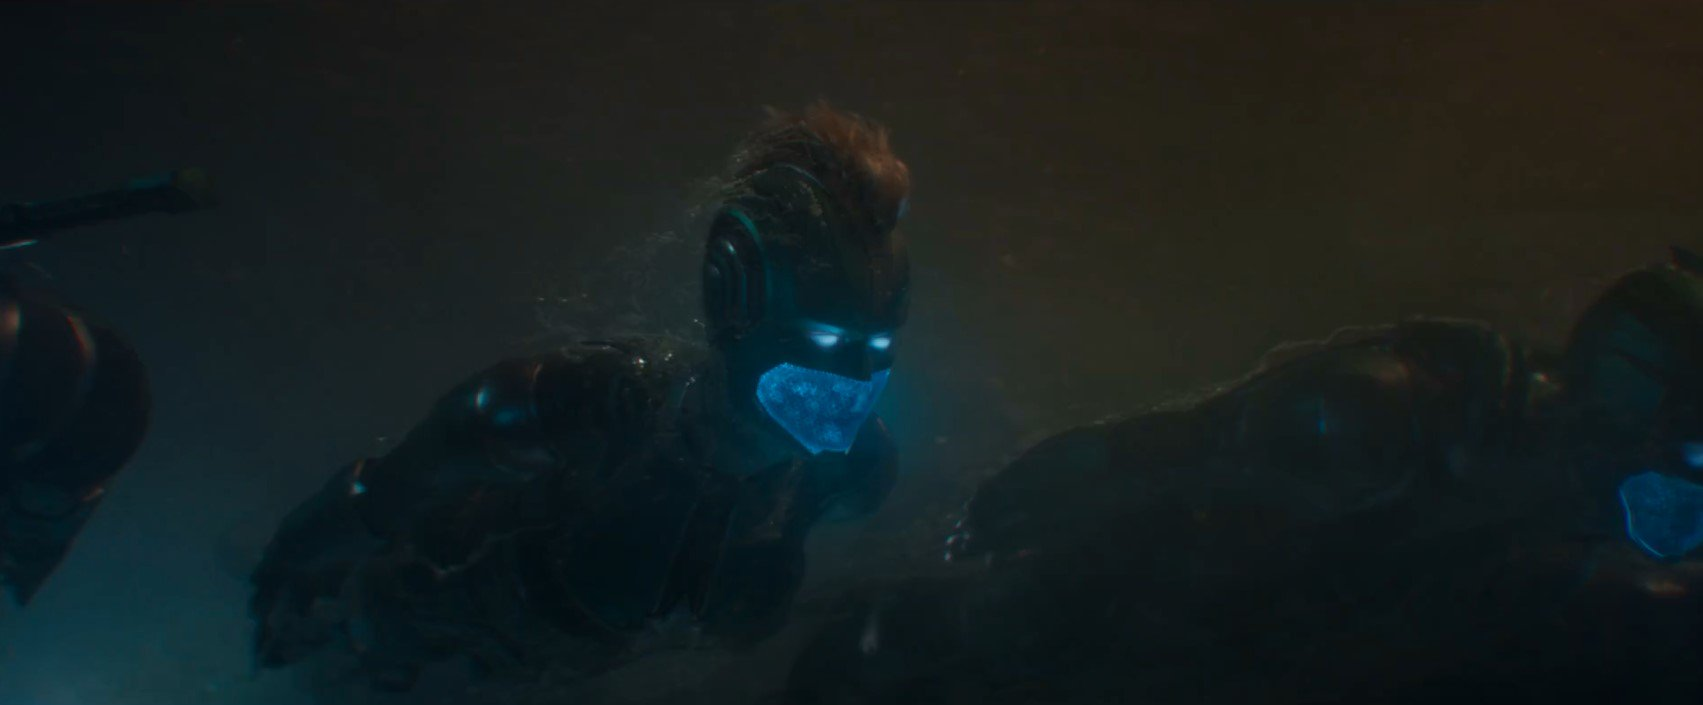 captain-marvel-trailer-image-060